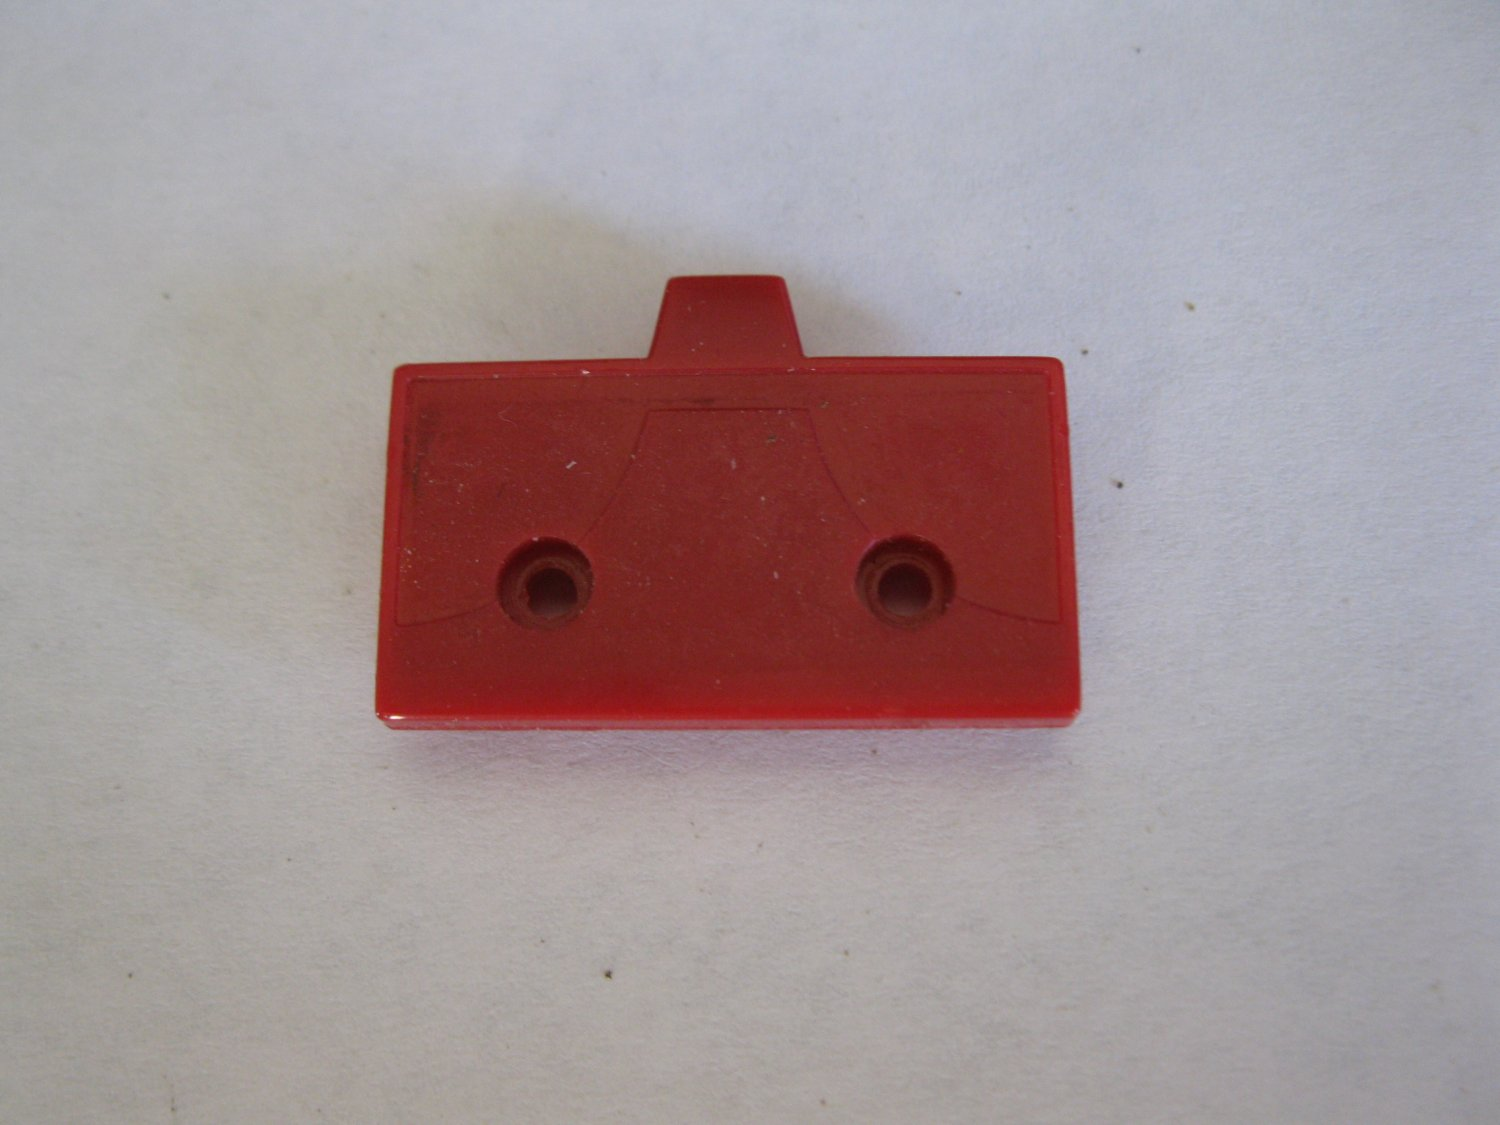 G1 Transformers Action figure part: 1986 Rodimus Prime - Red Cover Plate